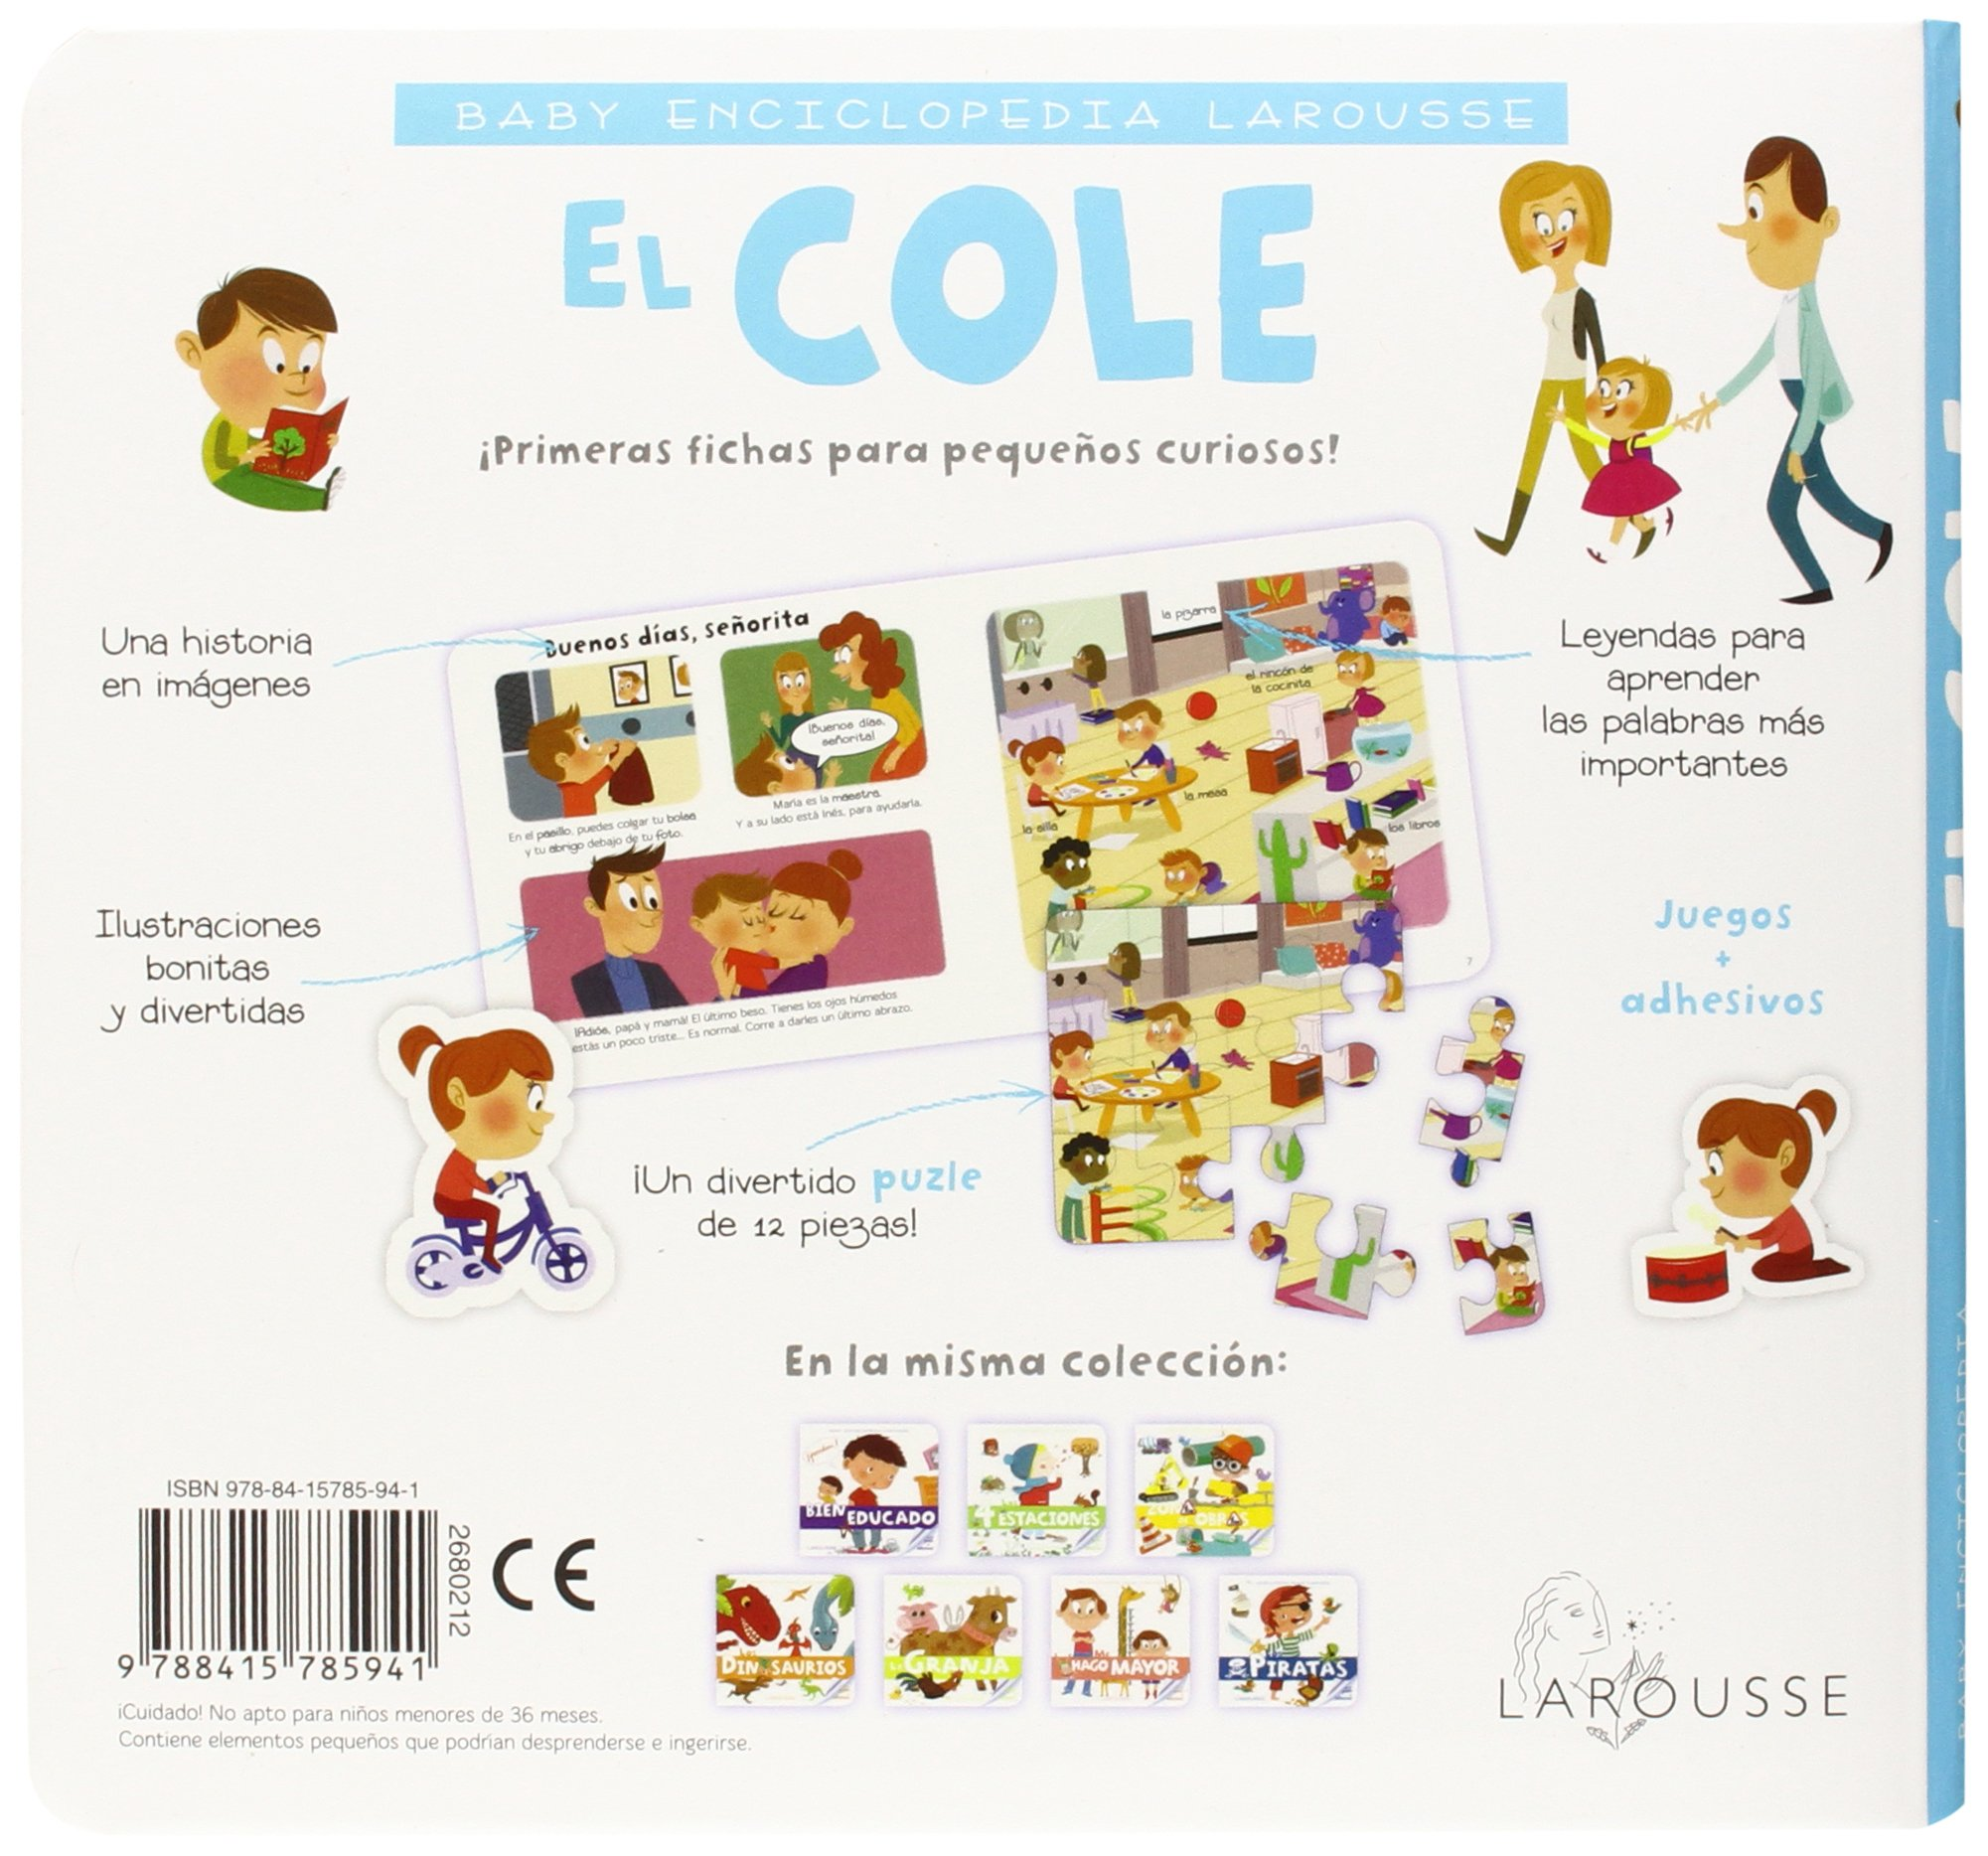 Amazon.com: El cole / The School (Baby Enciclopedia) (Spanish Edition) (9788415785941): Larousse Editorial, Claire Wortemann, Imma Estany: Books